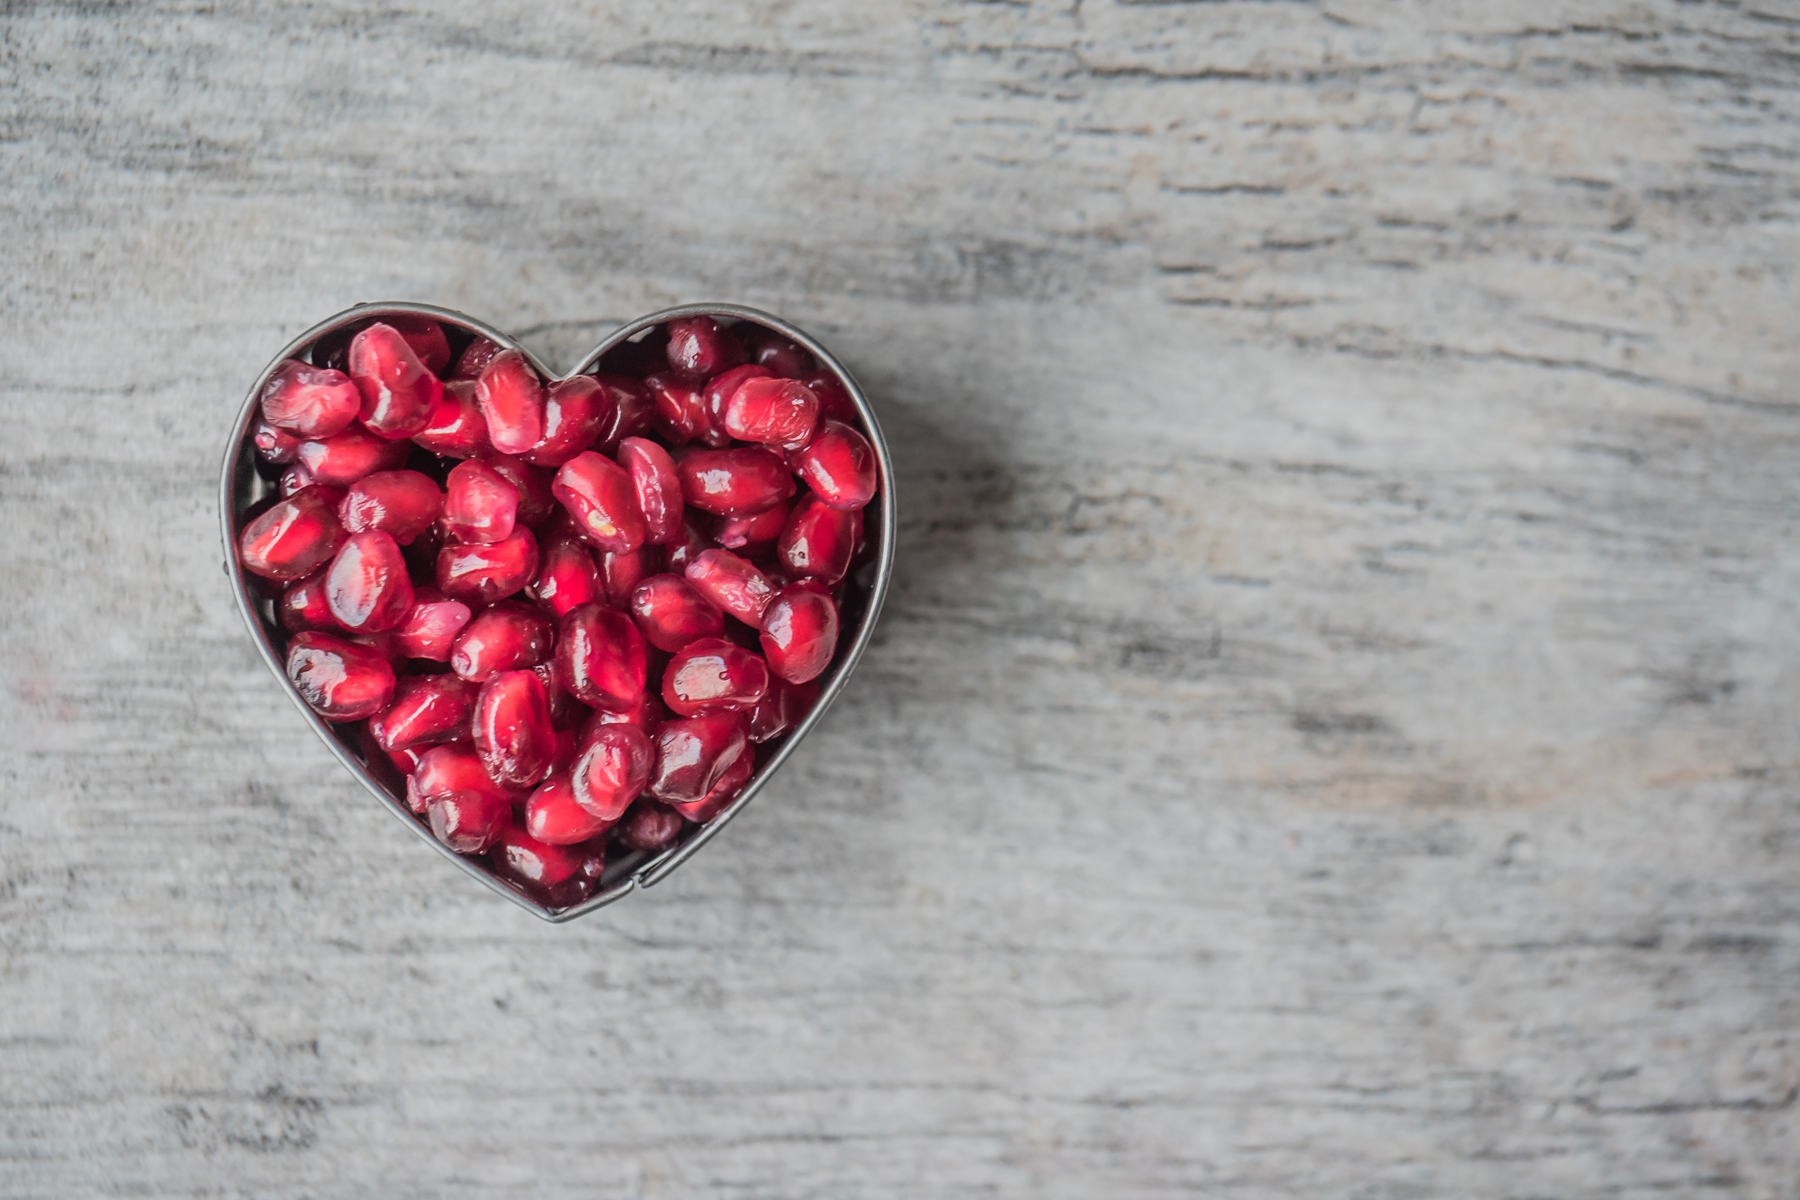 Heart shaped metal bowl filled with pomegranate seeds